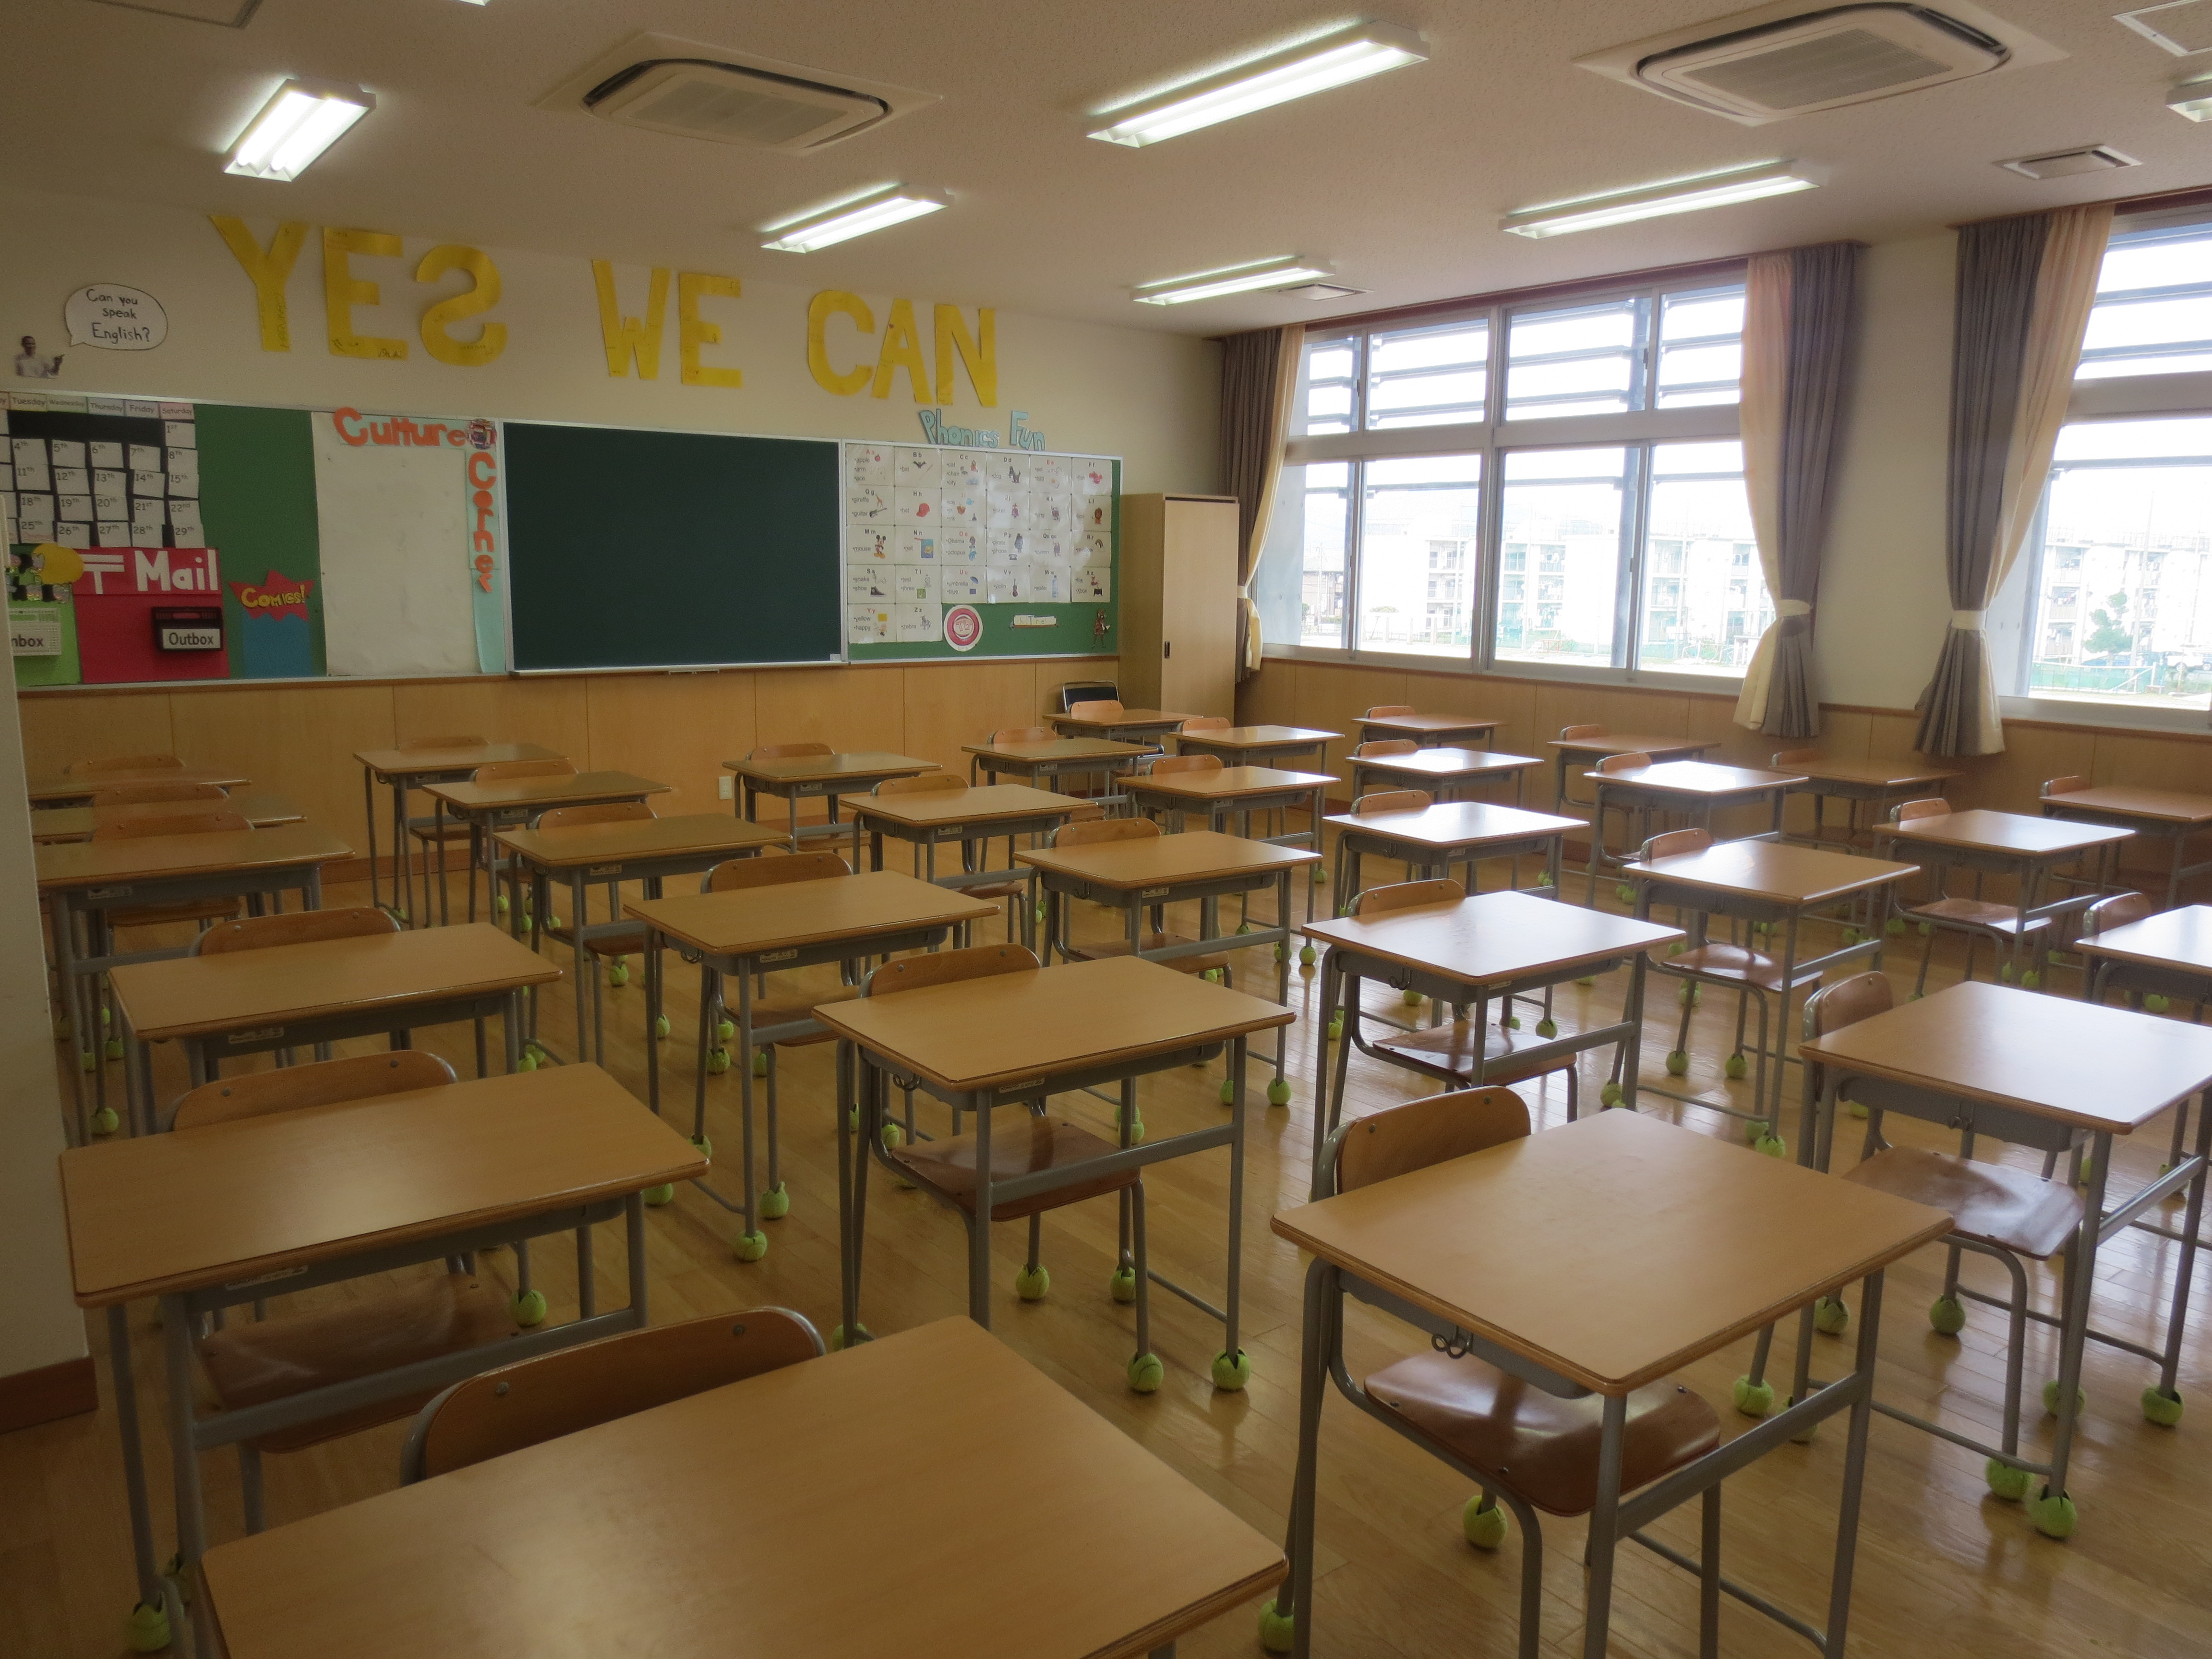 Japanese Classroom Design : Inside a middle school in japan 素敵なライフ